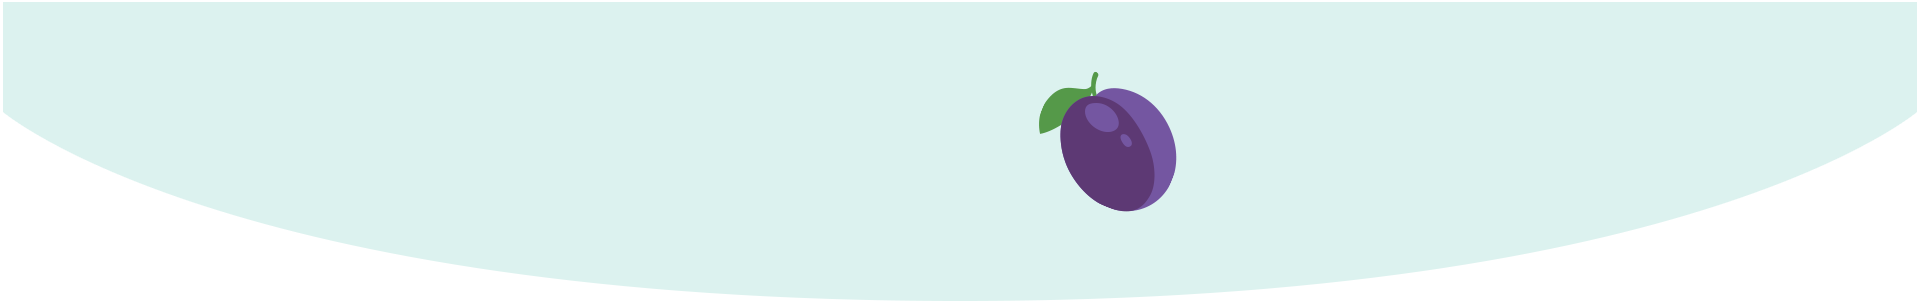 baby size of large plum week 13